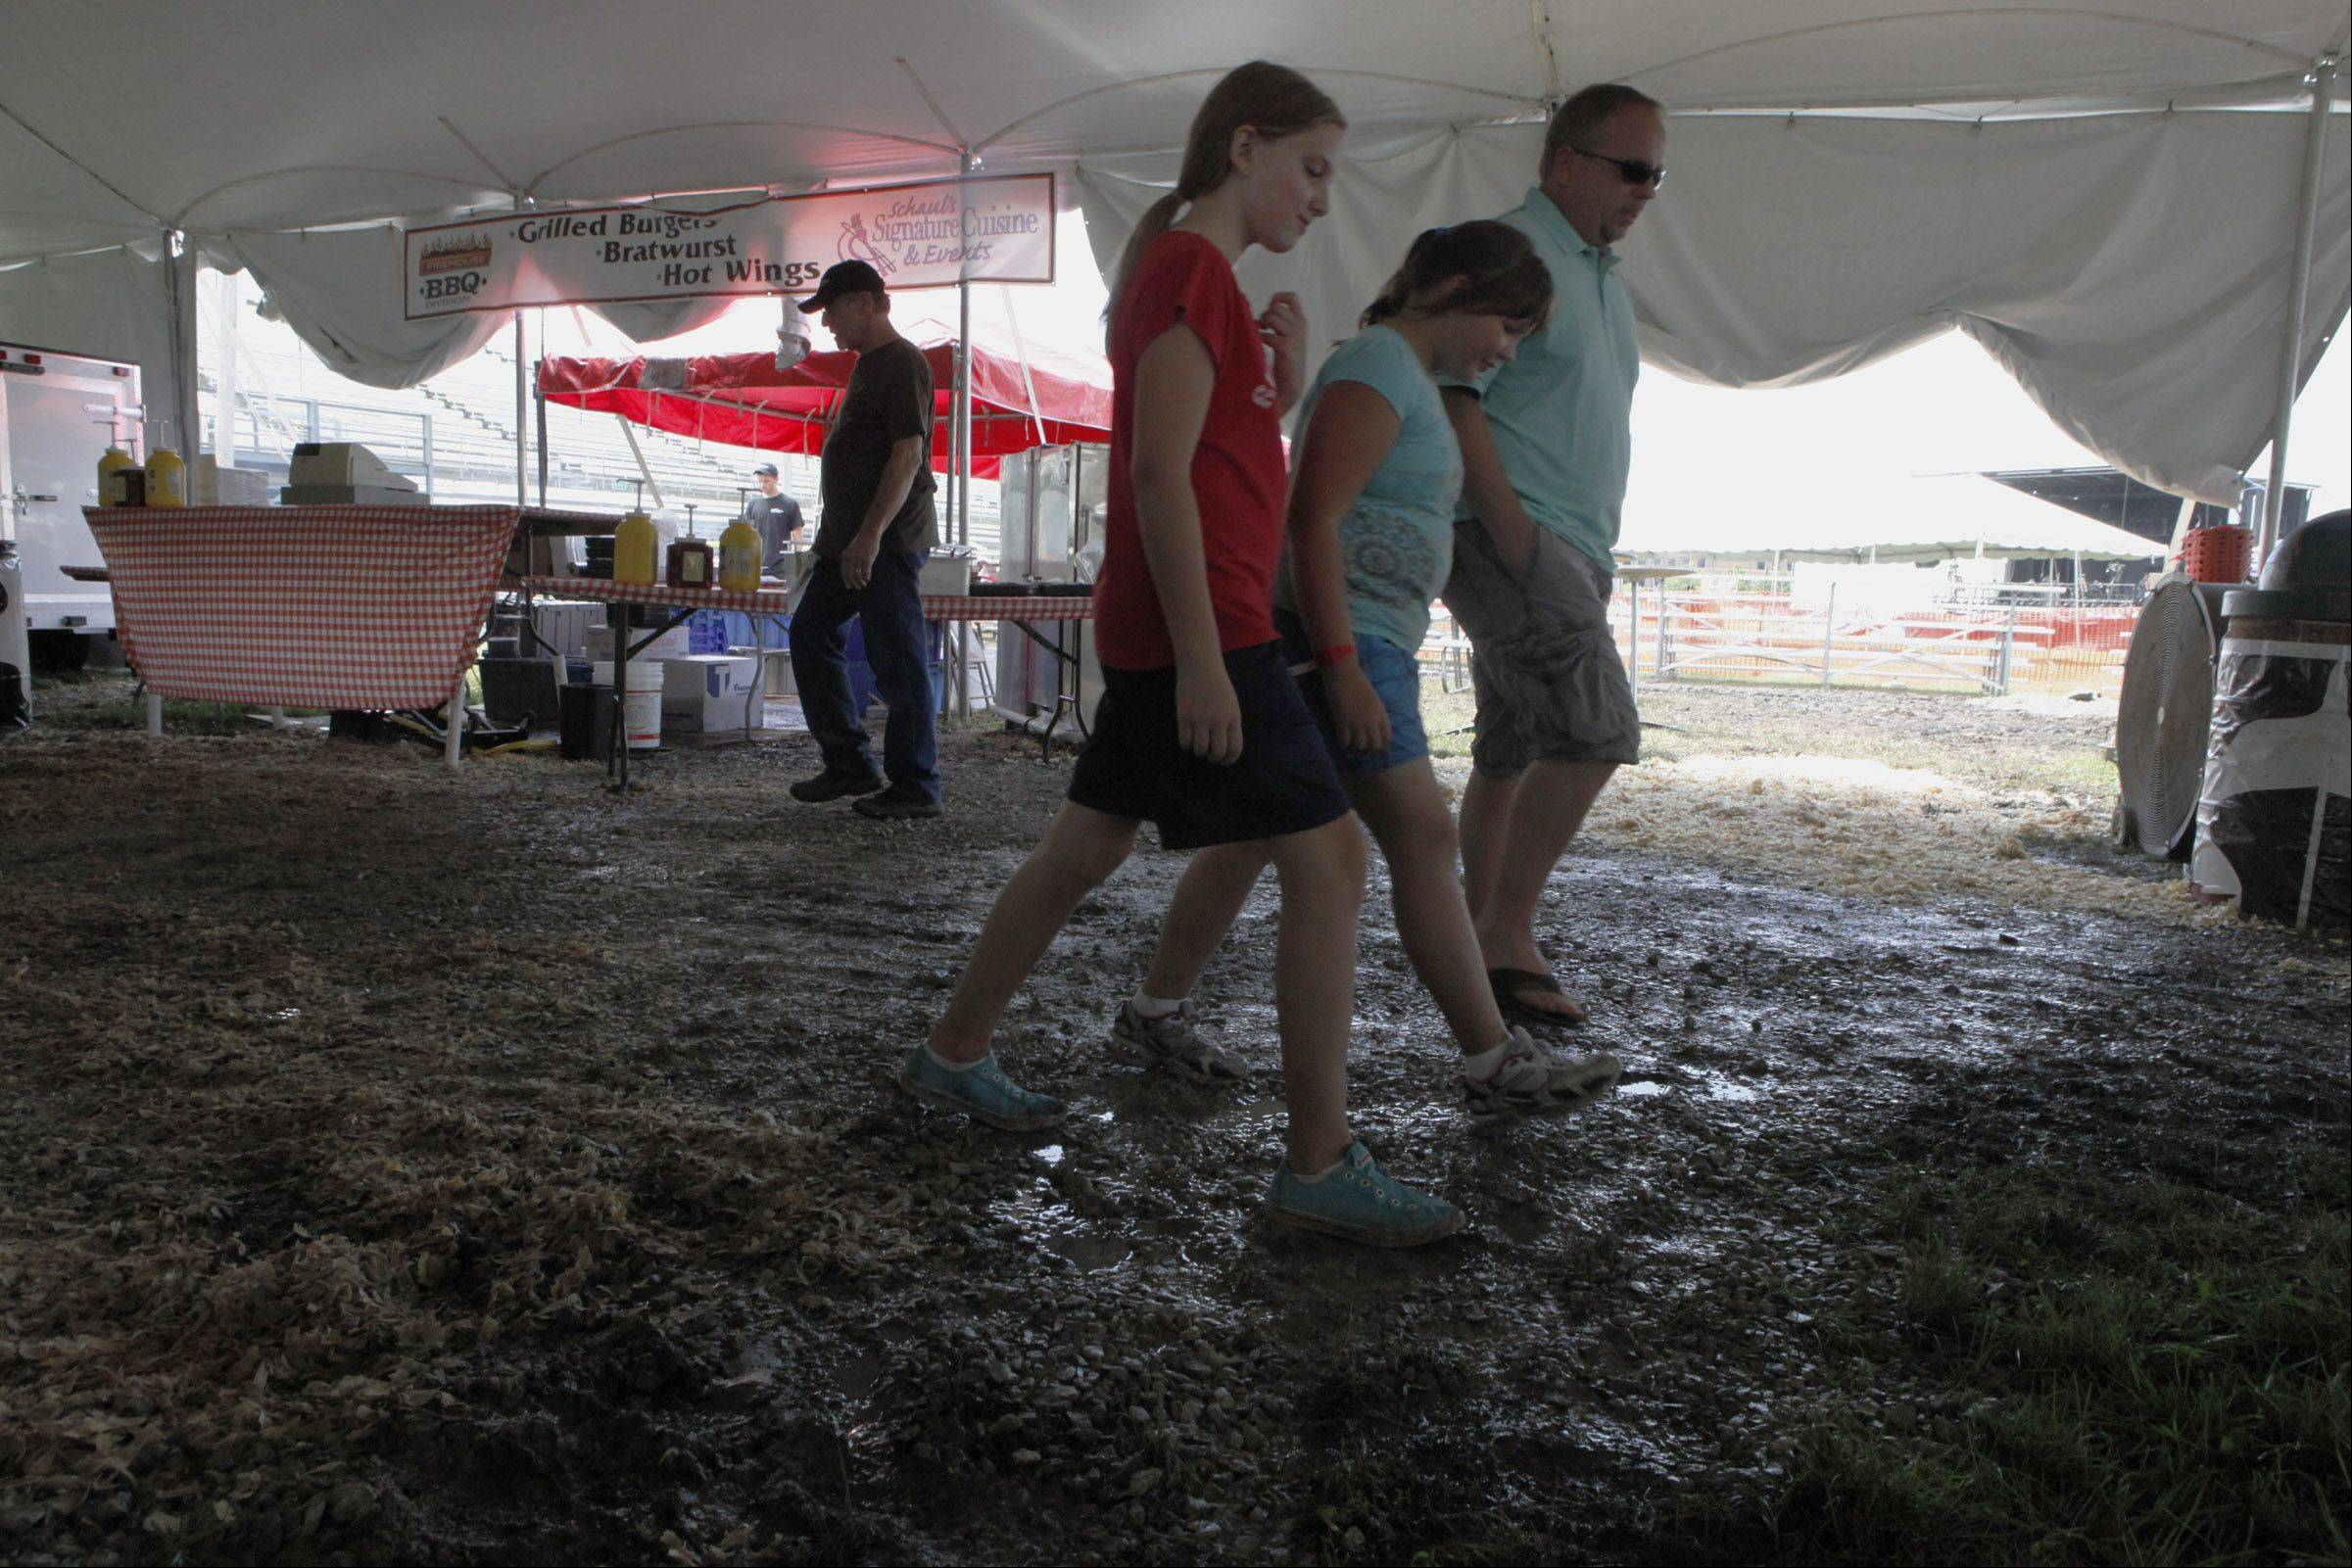 The ground was muddy and wet on Friday inside the first beer and wine tent at the DuPage County Fair. Organizers believe that inclement weather is one of the reasons for a lower than anticipated attendance.